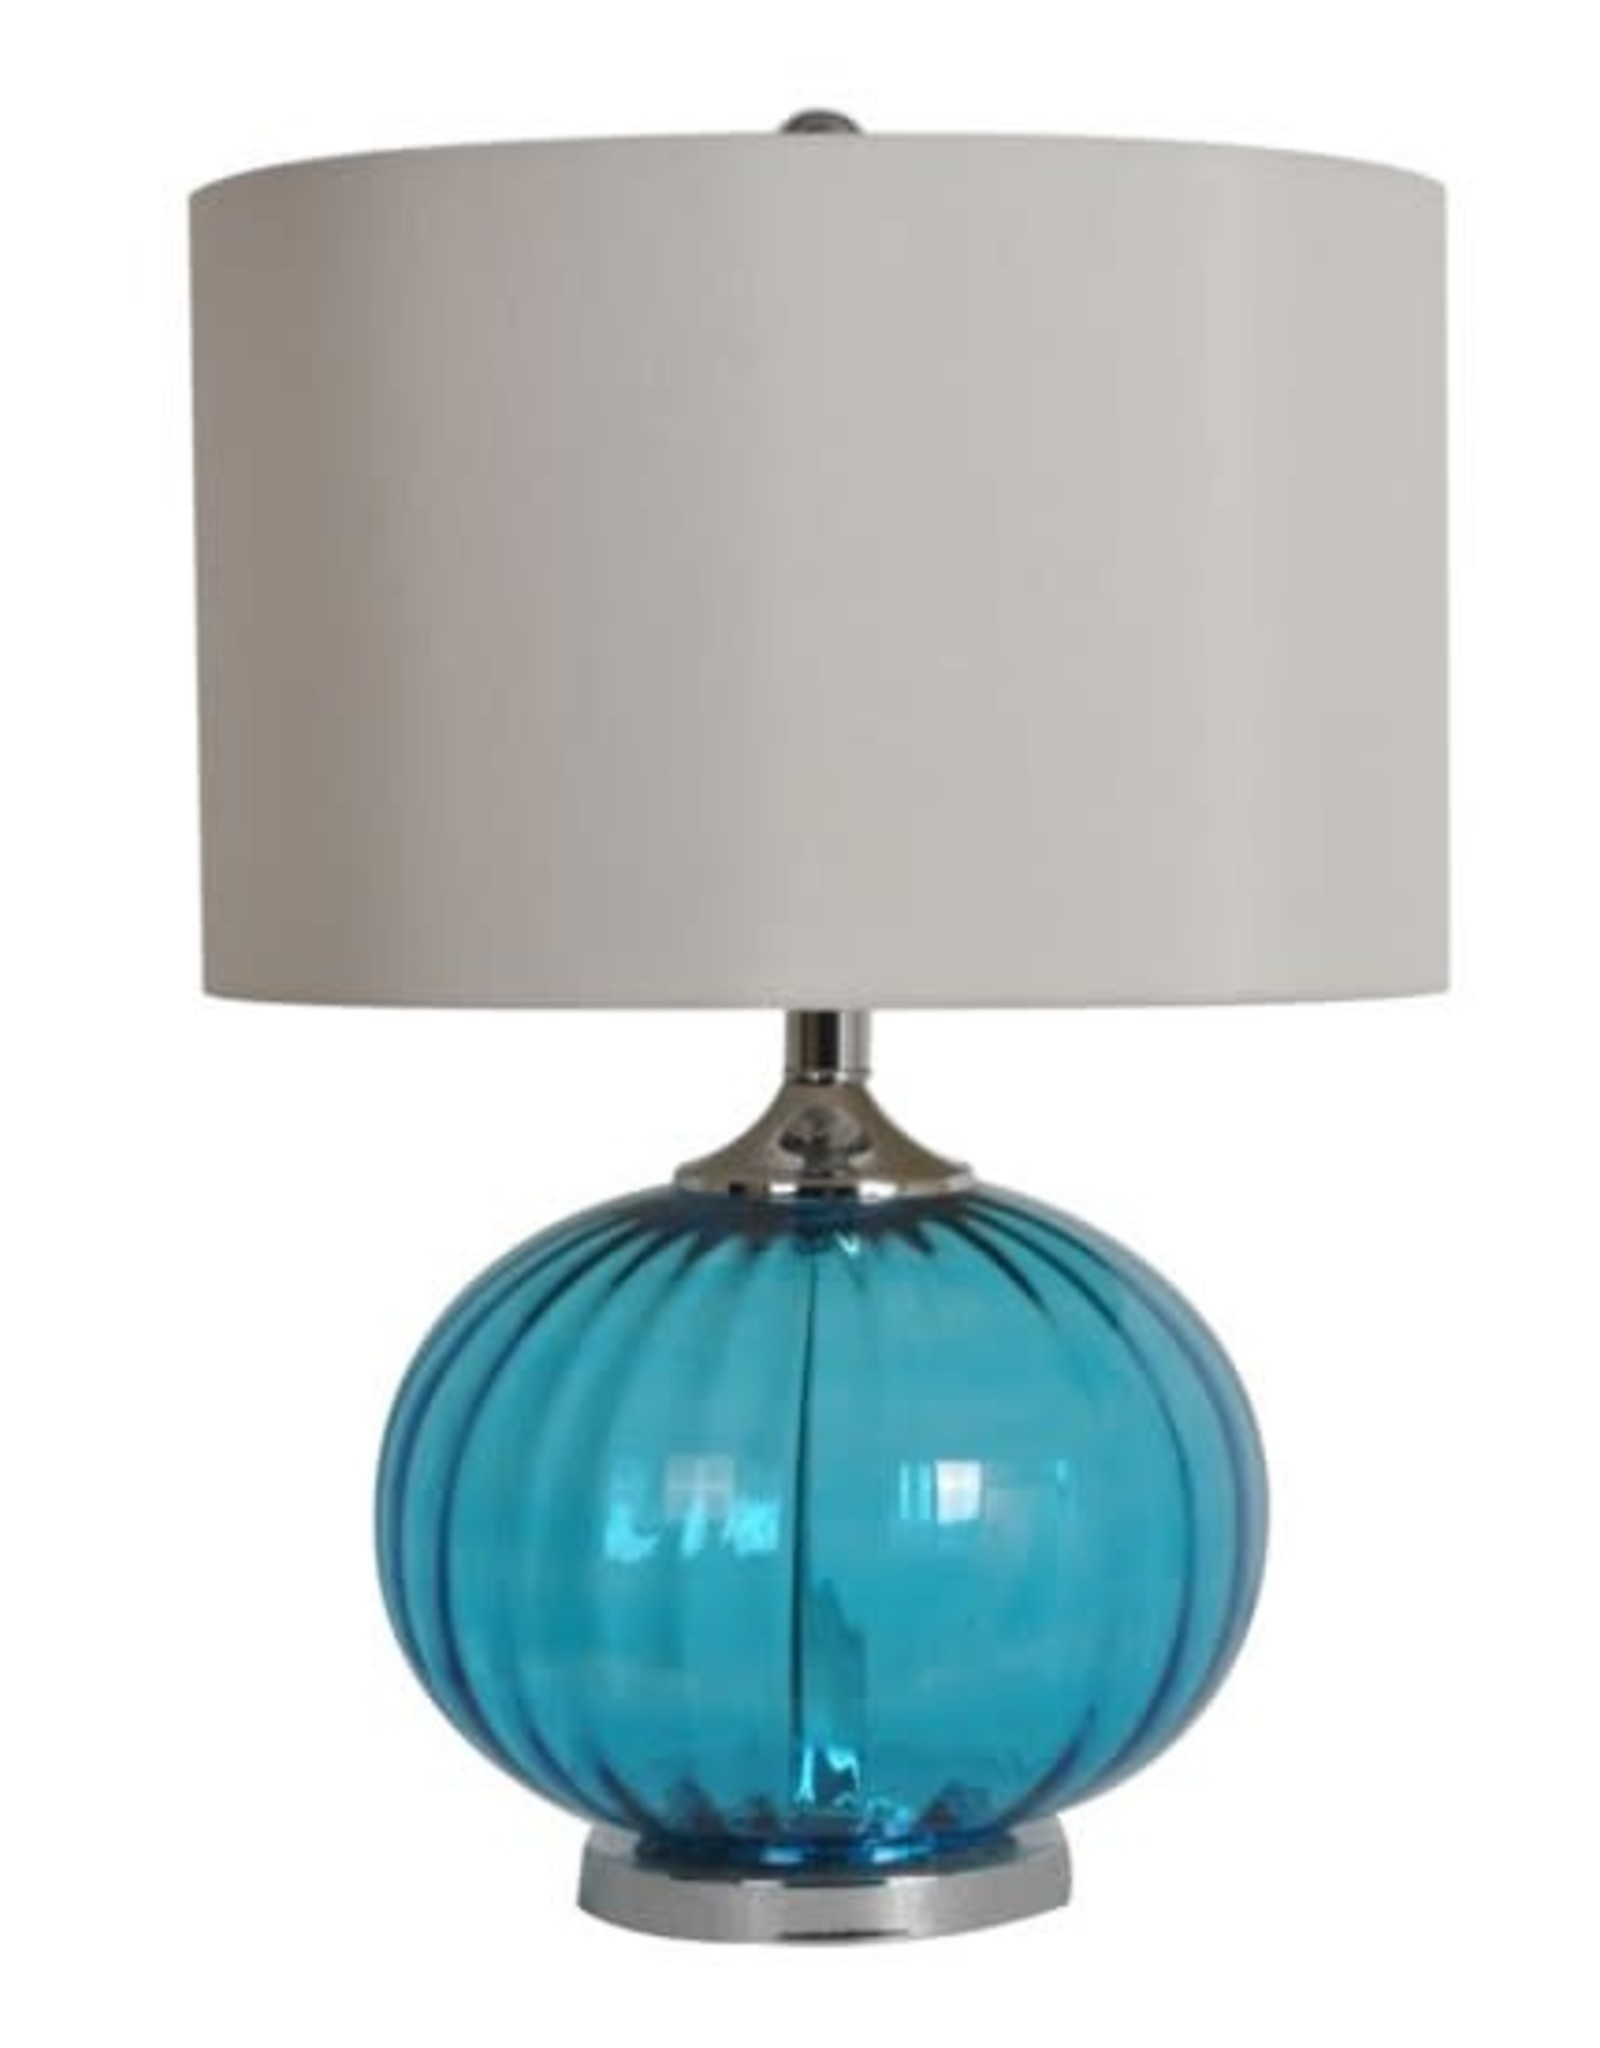 "Crestview New Port Table Lamp 22"" tall (aqua)"